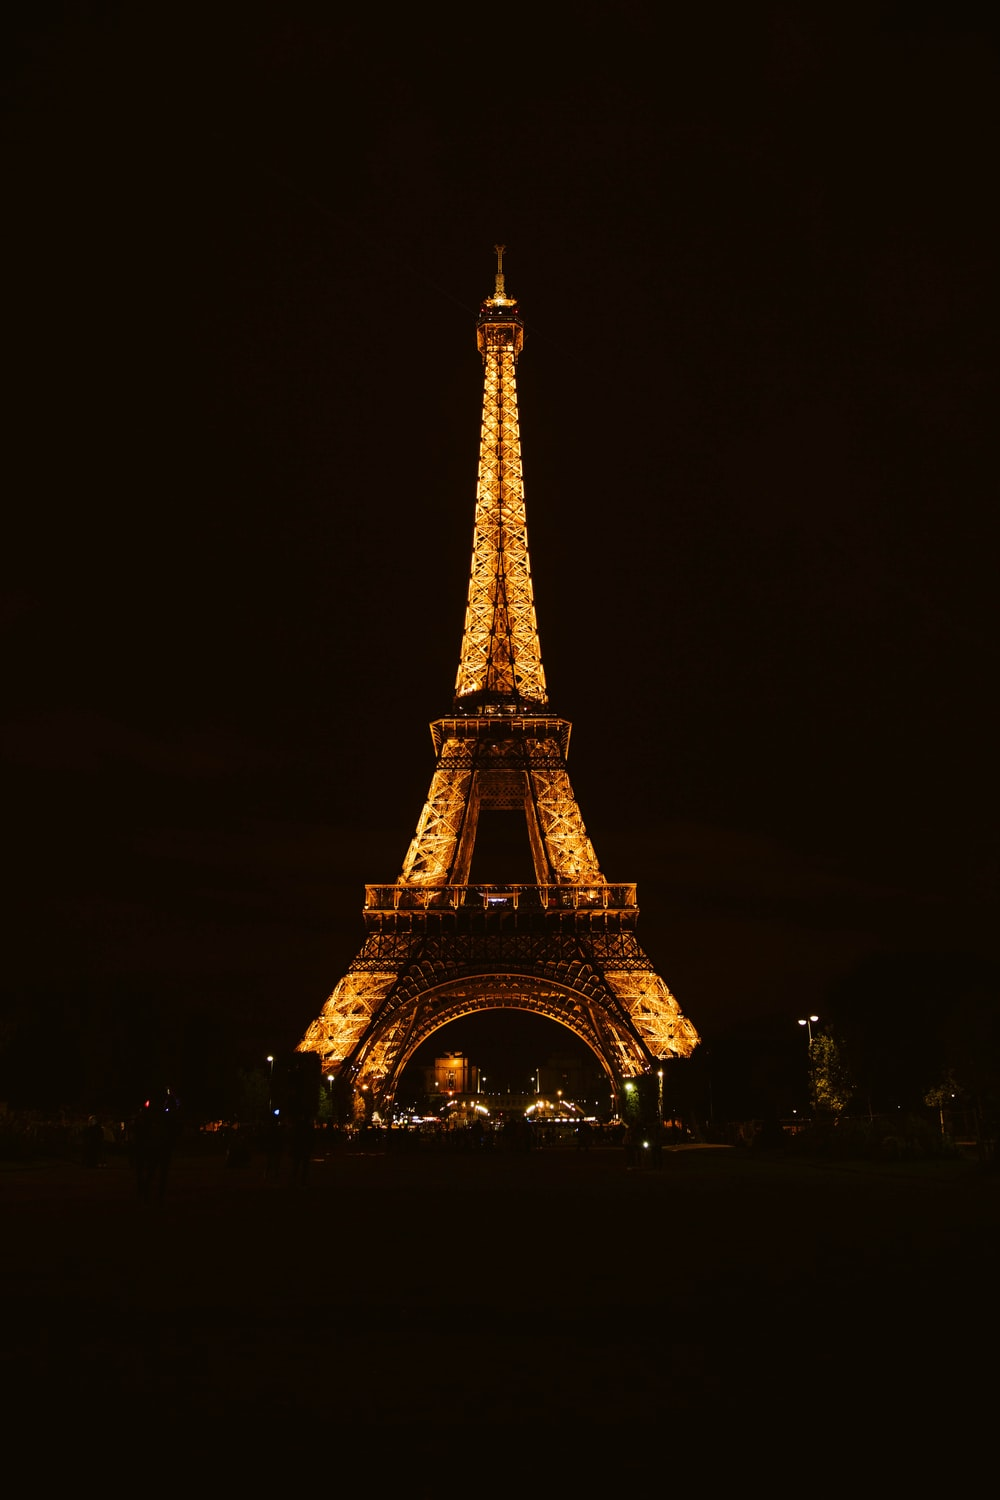 Eiffel Tower At Night Pictures Download Free Images On Unsplash